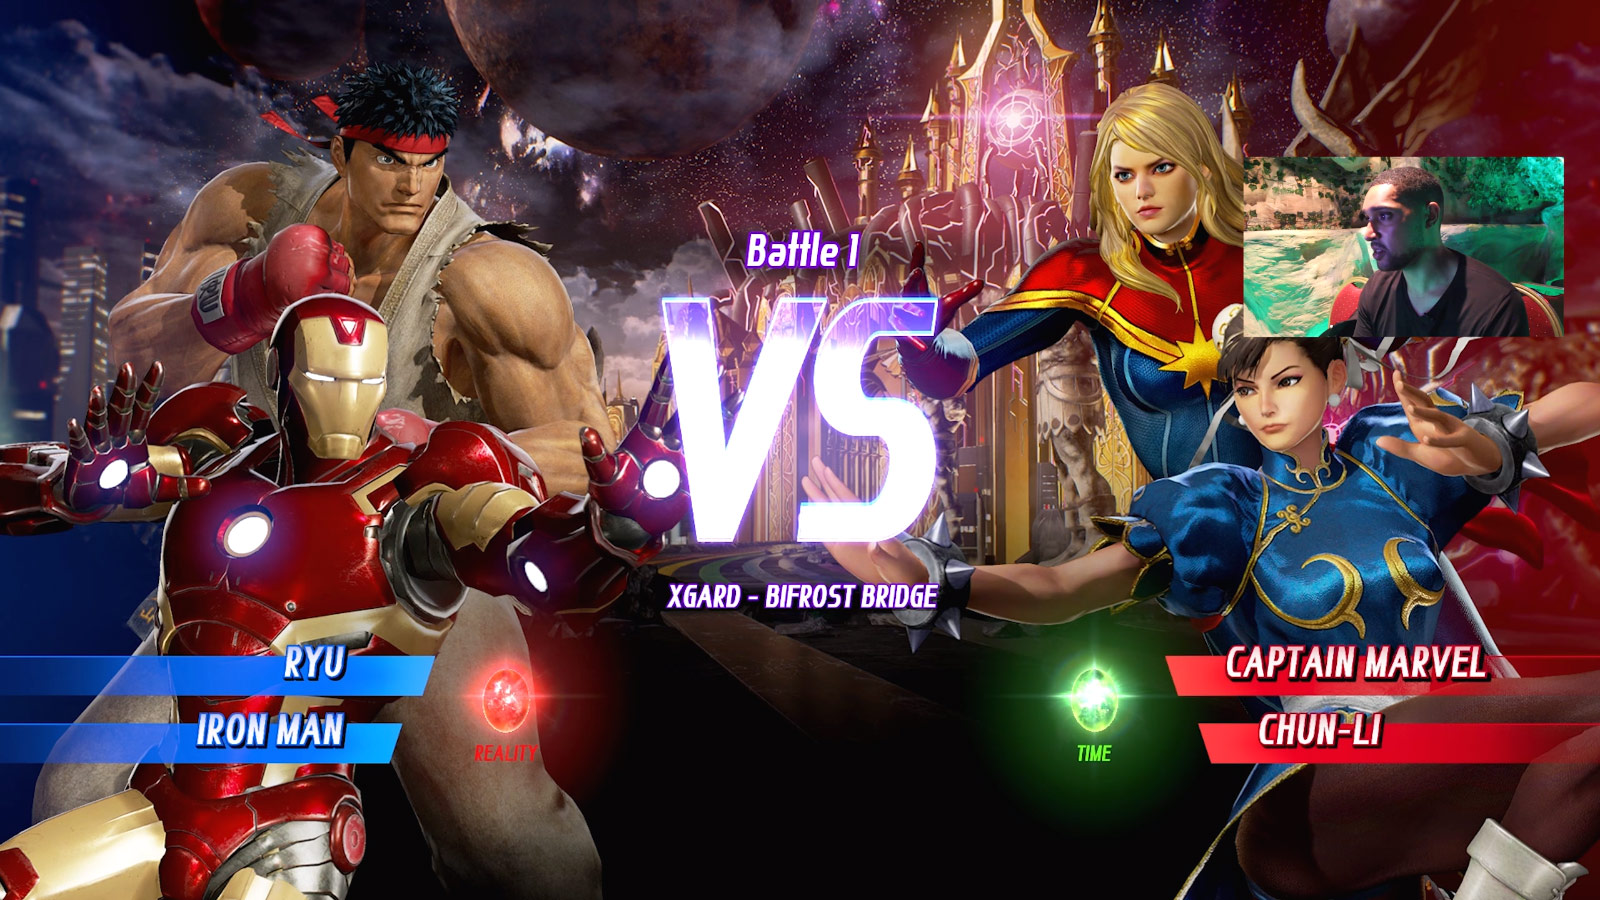 Marvel vs. Capcom: Infinite character select screen and menus 6 out of 6 image gallery